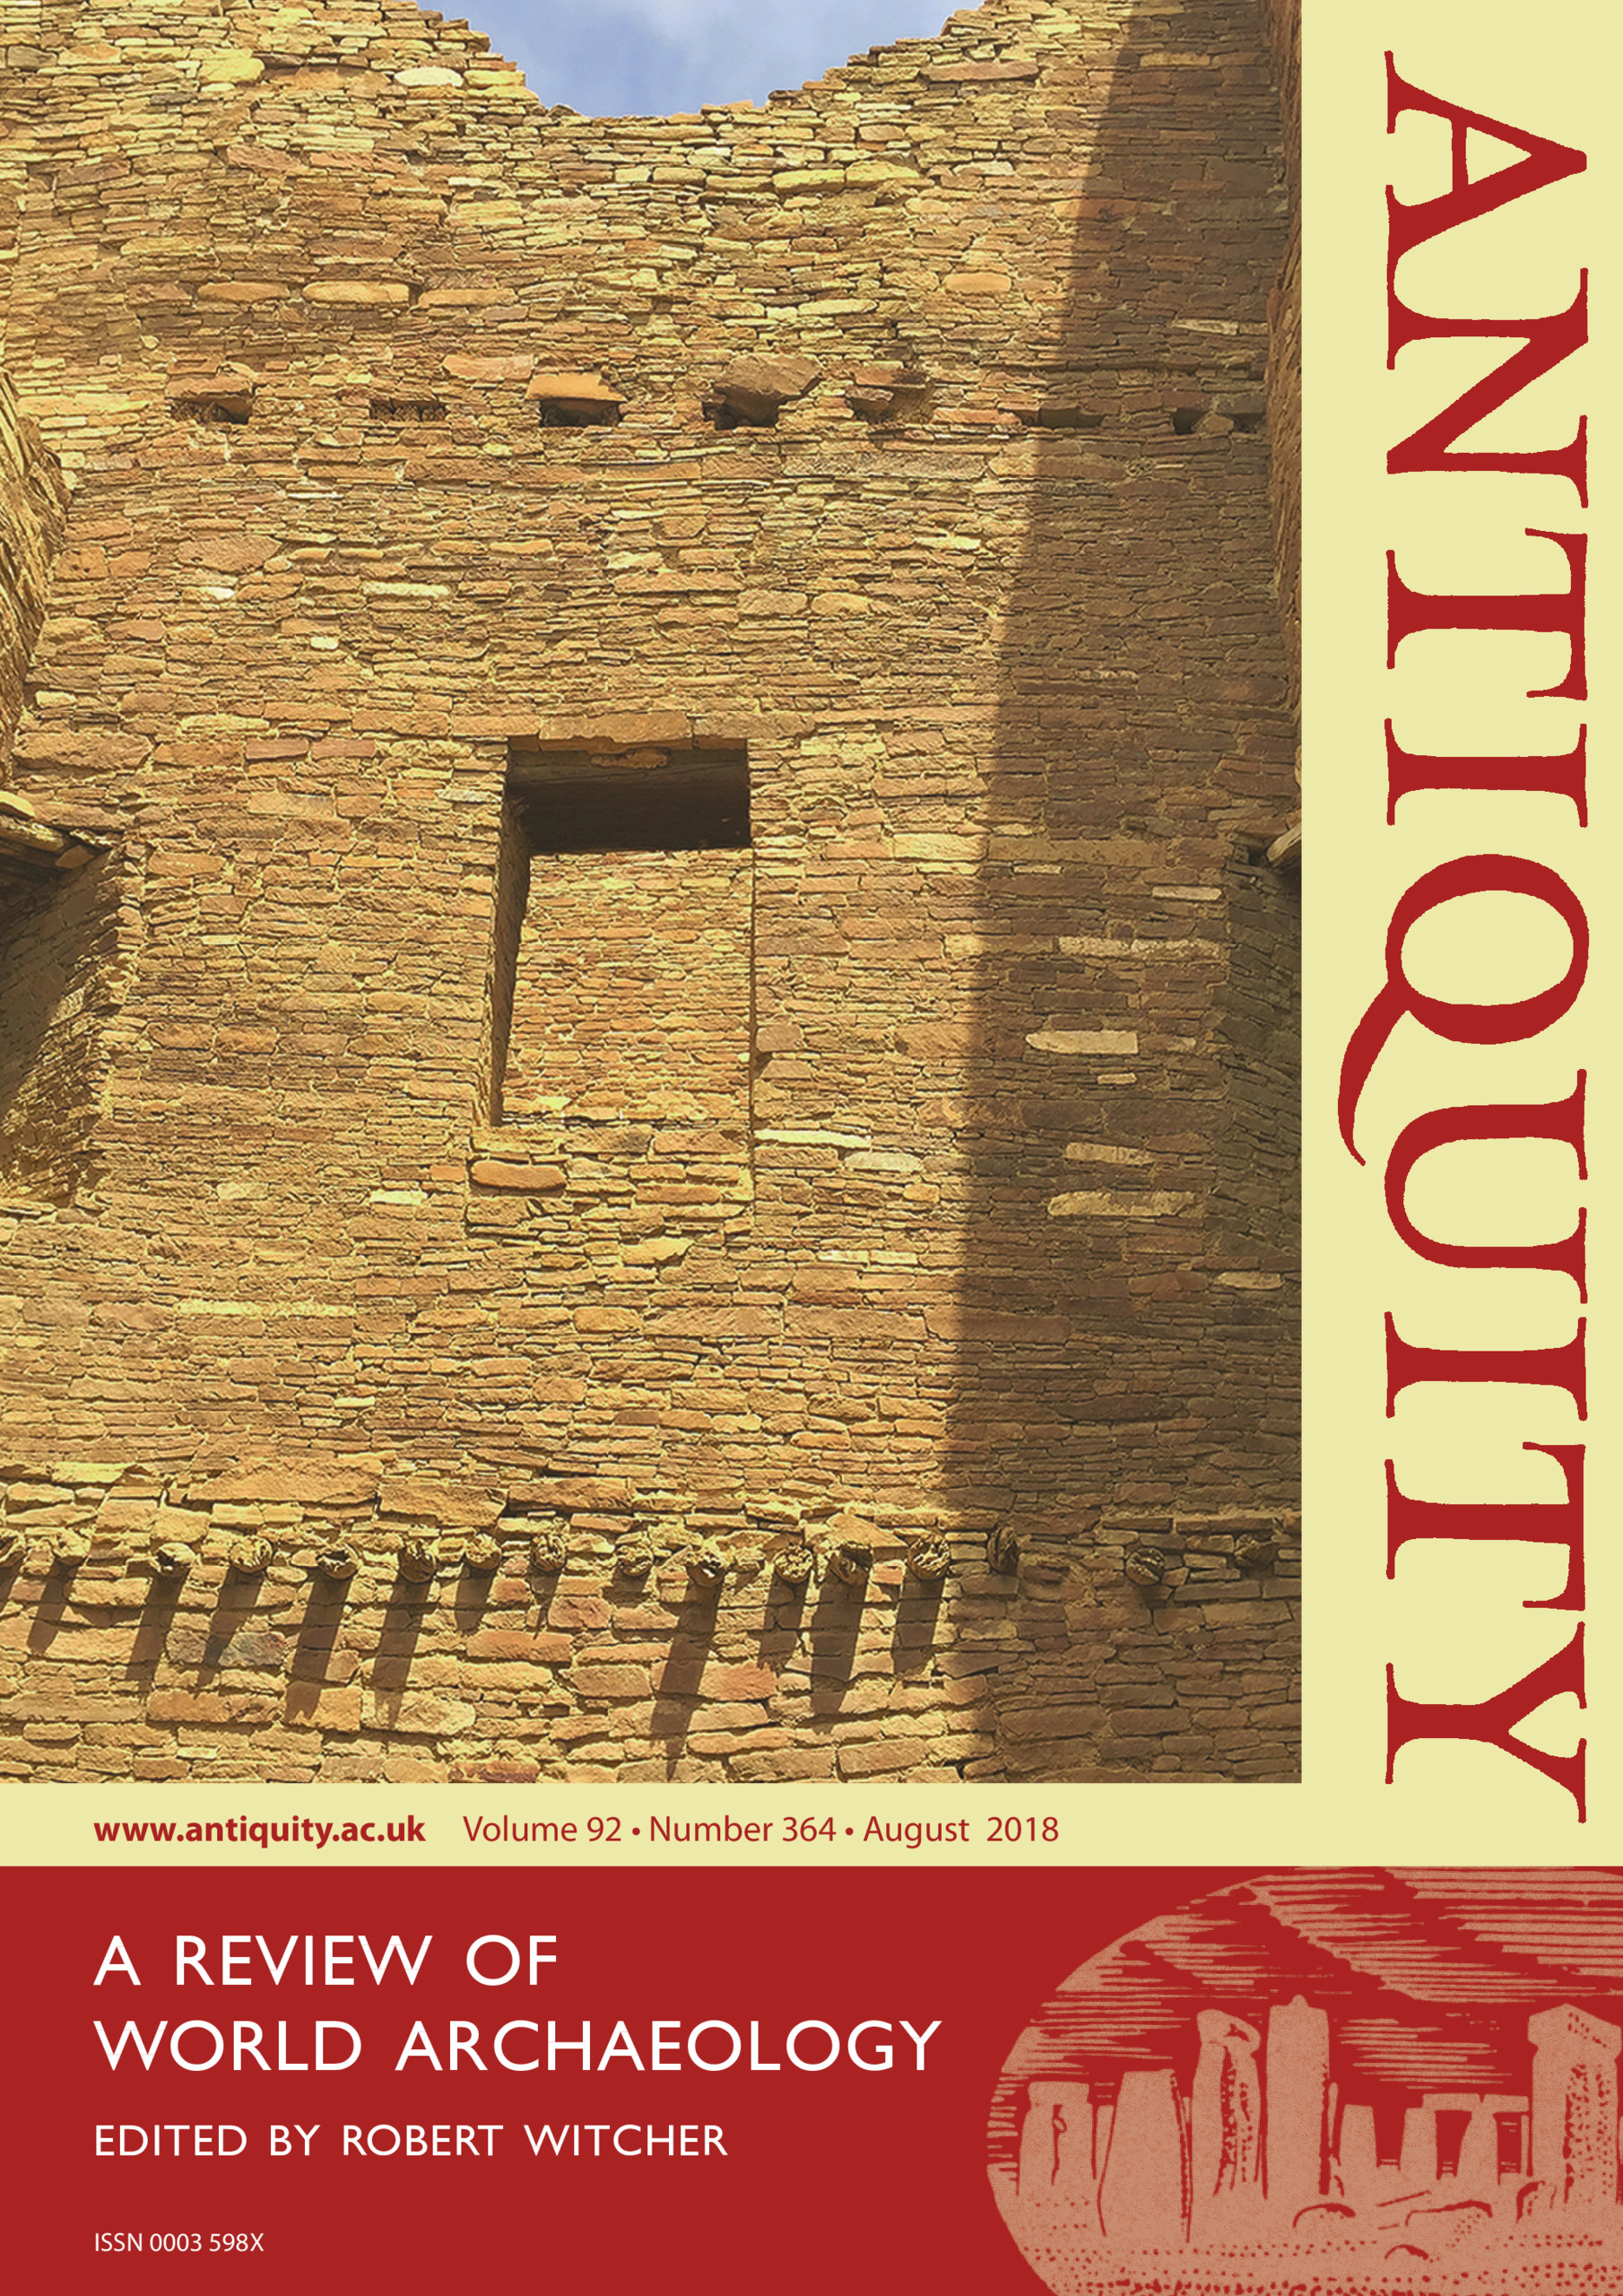 Journal Cover - Title in red lettering in a vertical, cream banner to the right of a photography of an ancient stone wall.